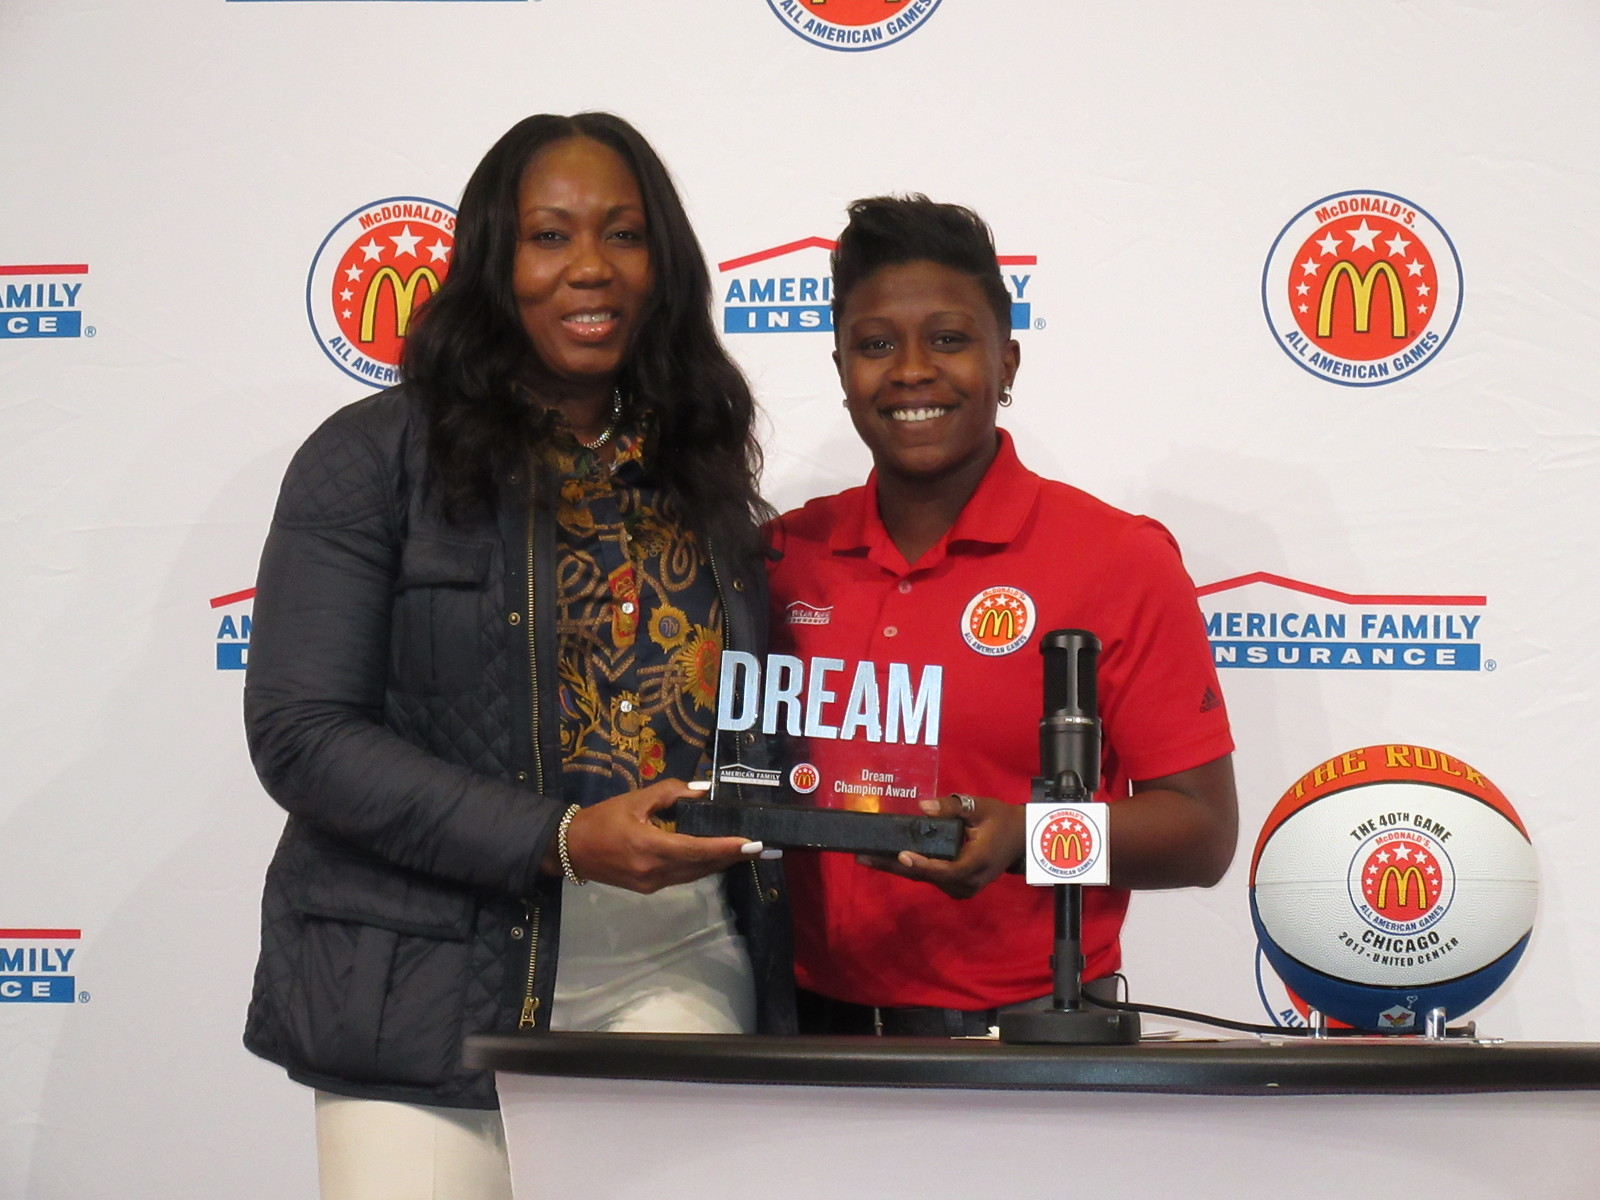 Mikayla Coombs presented her mom, Mitzie, with the Dream Champion Award. (Photo: McDAAG)